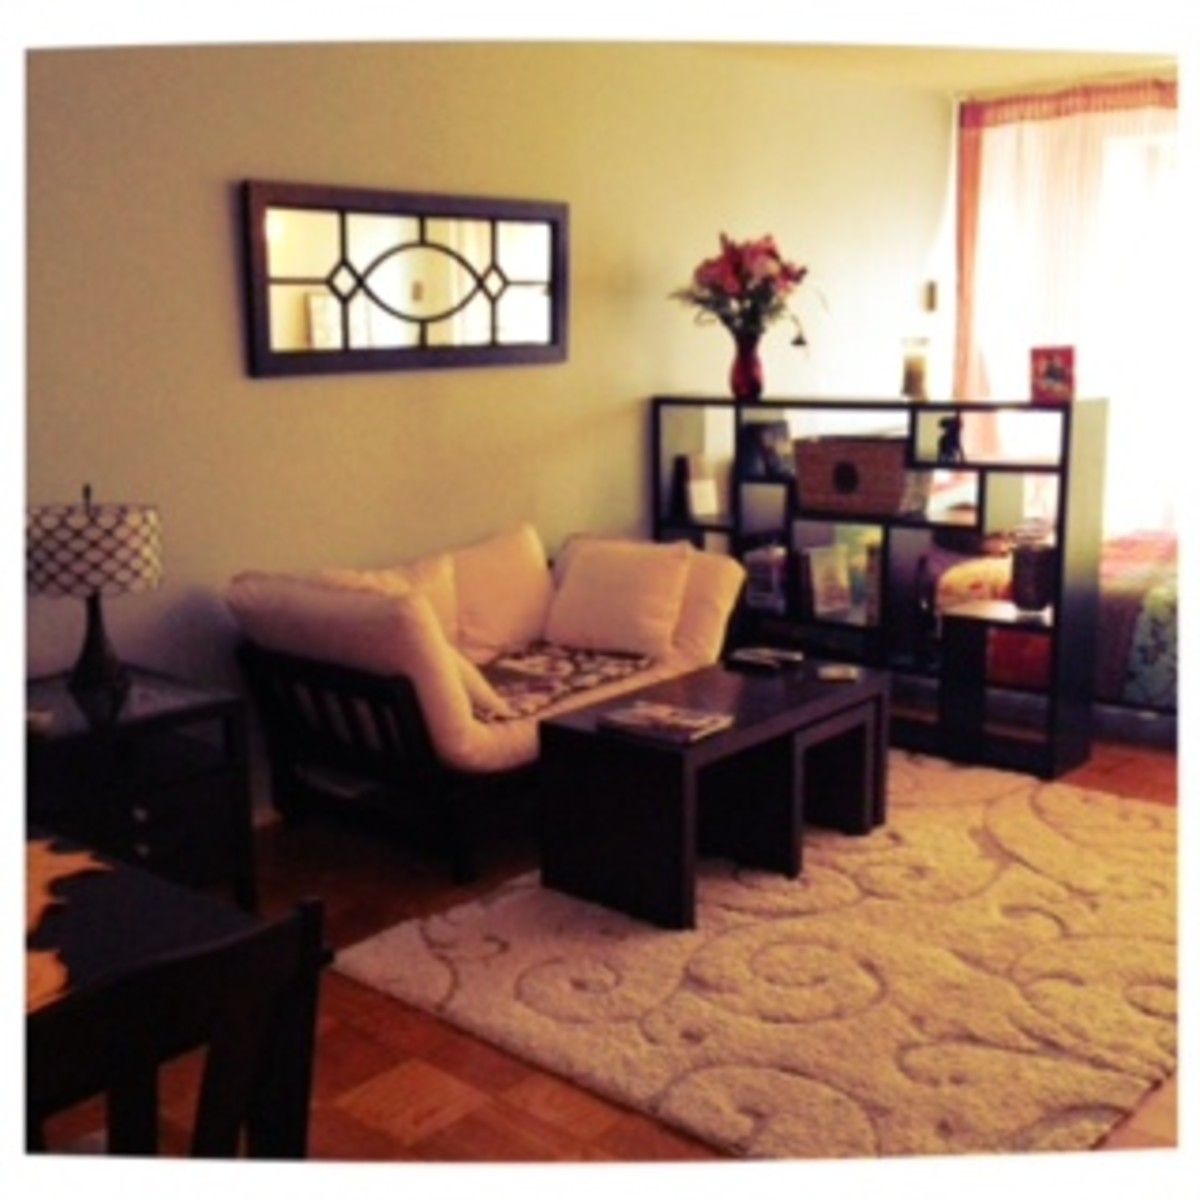 How to Furnish a Small Studio Apartment